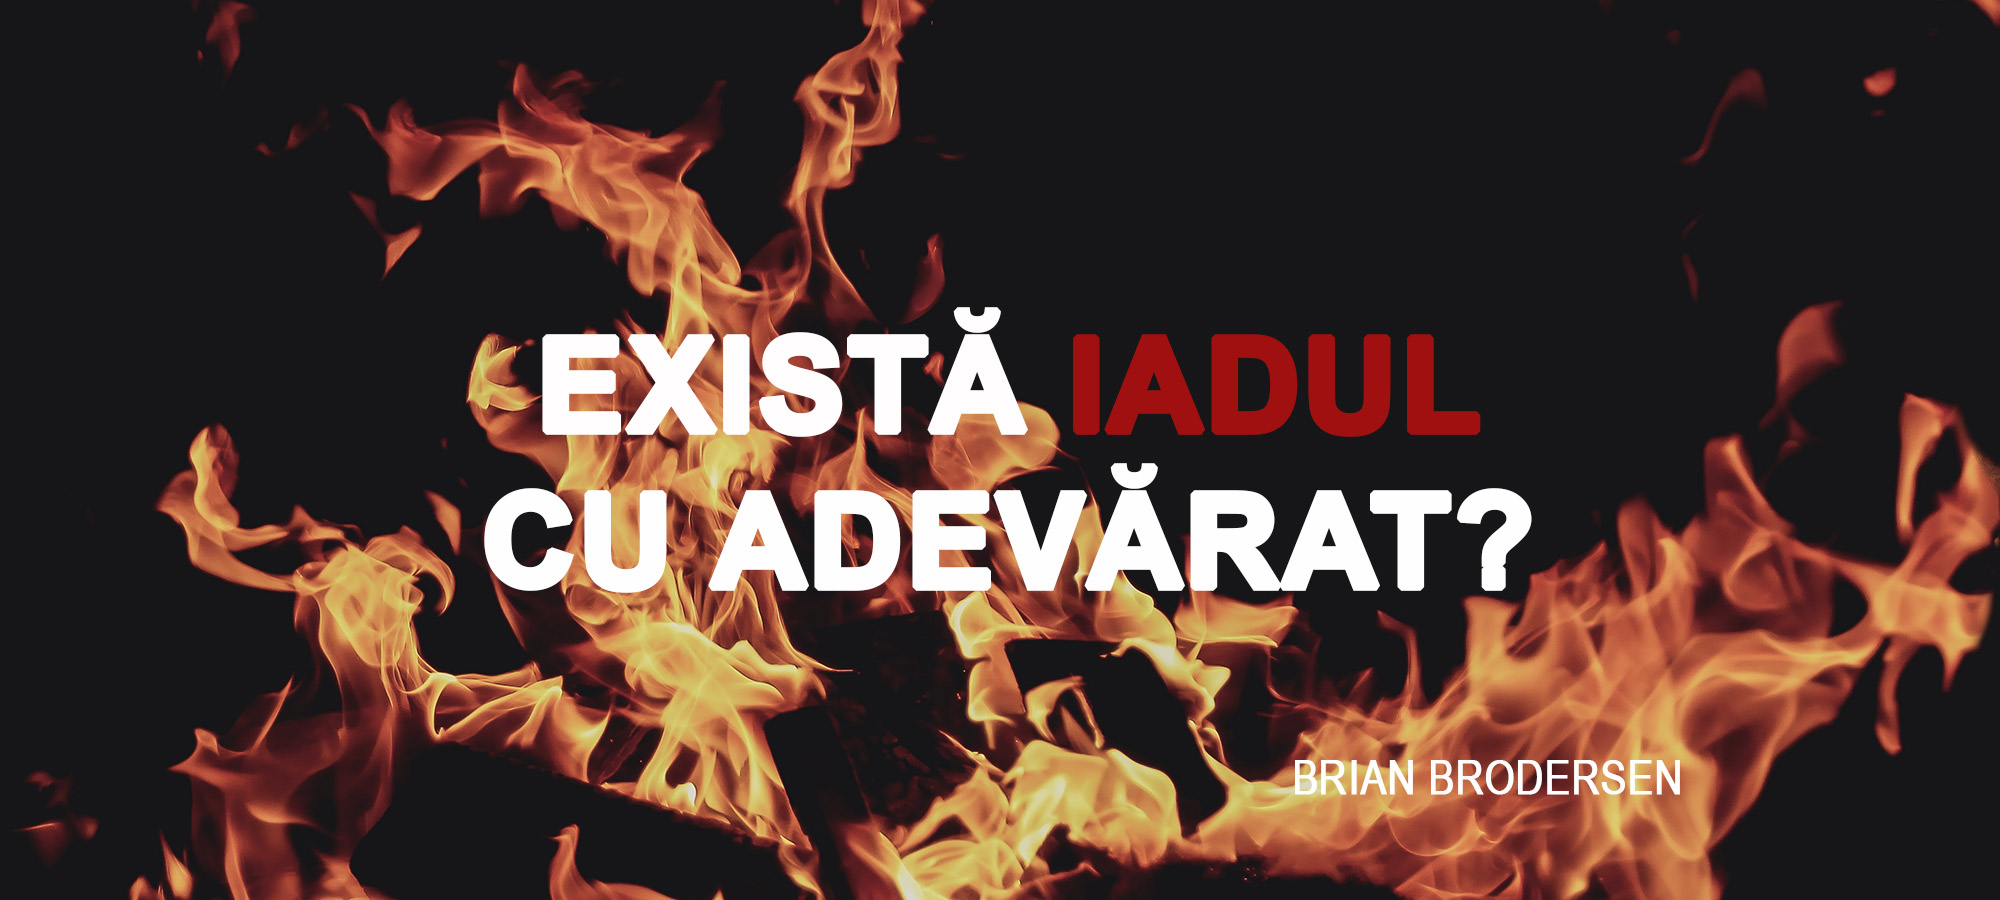 Does hell really exist Brian Brodersenfin2